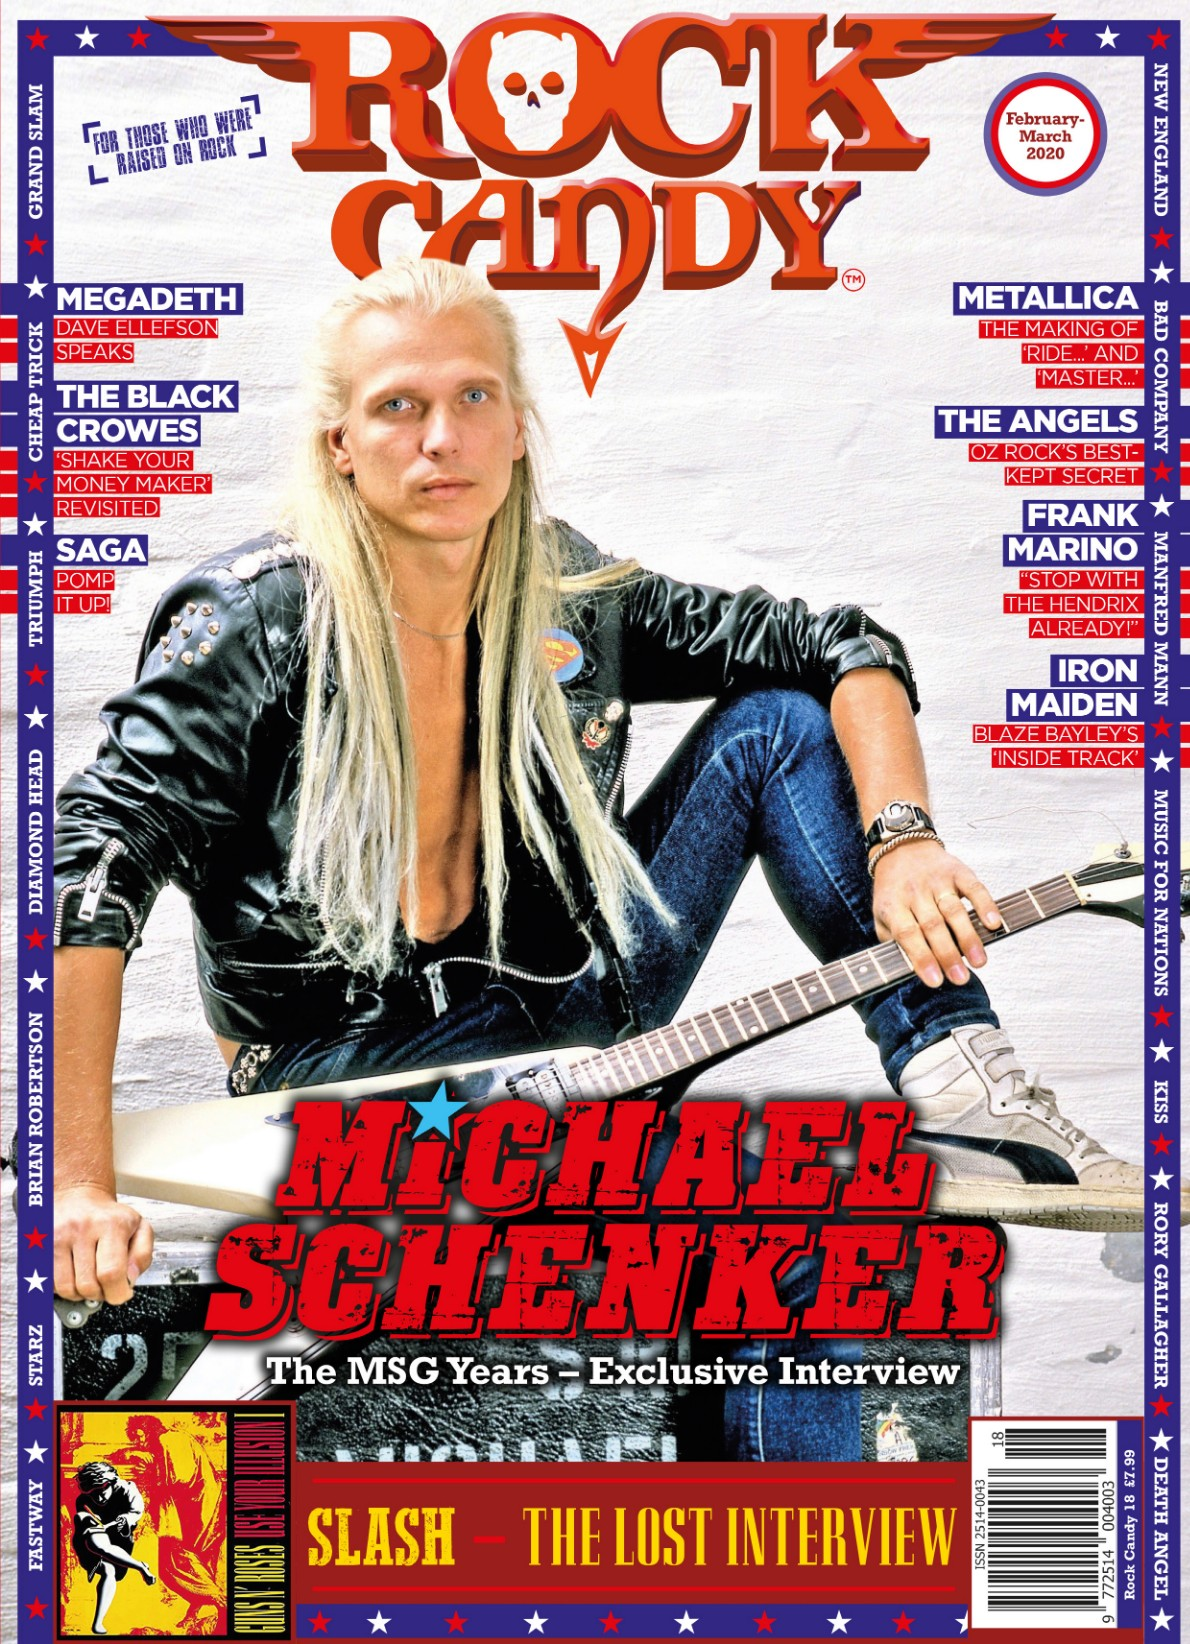 Issue 18 is available right now, featuring our Michael Schenker cover story mega-interview.